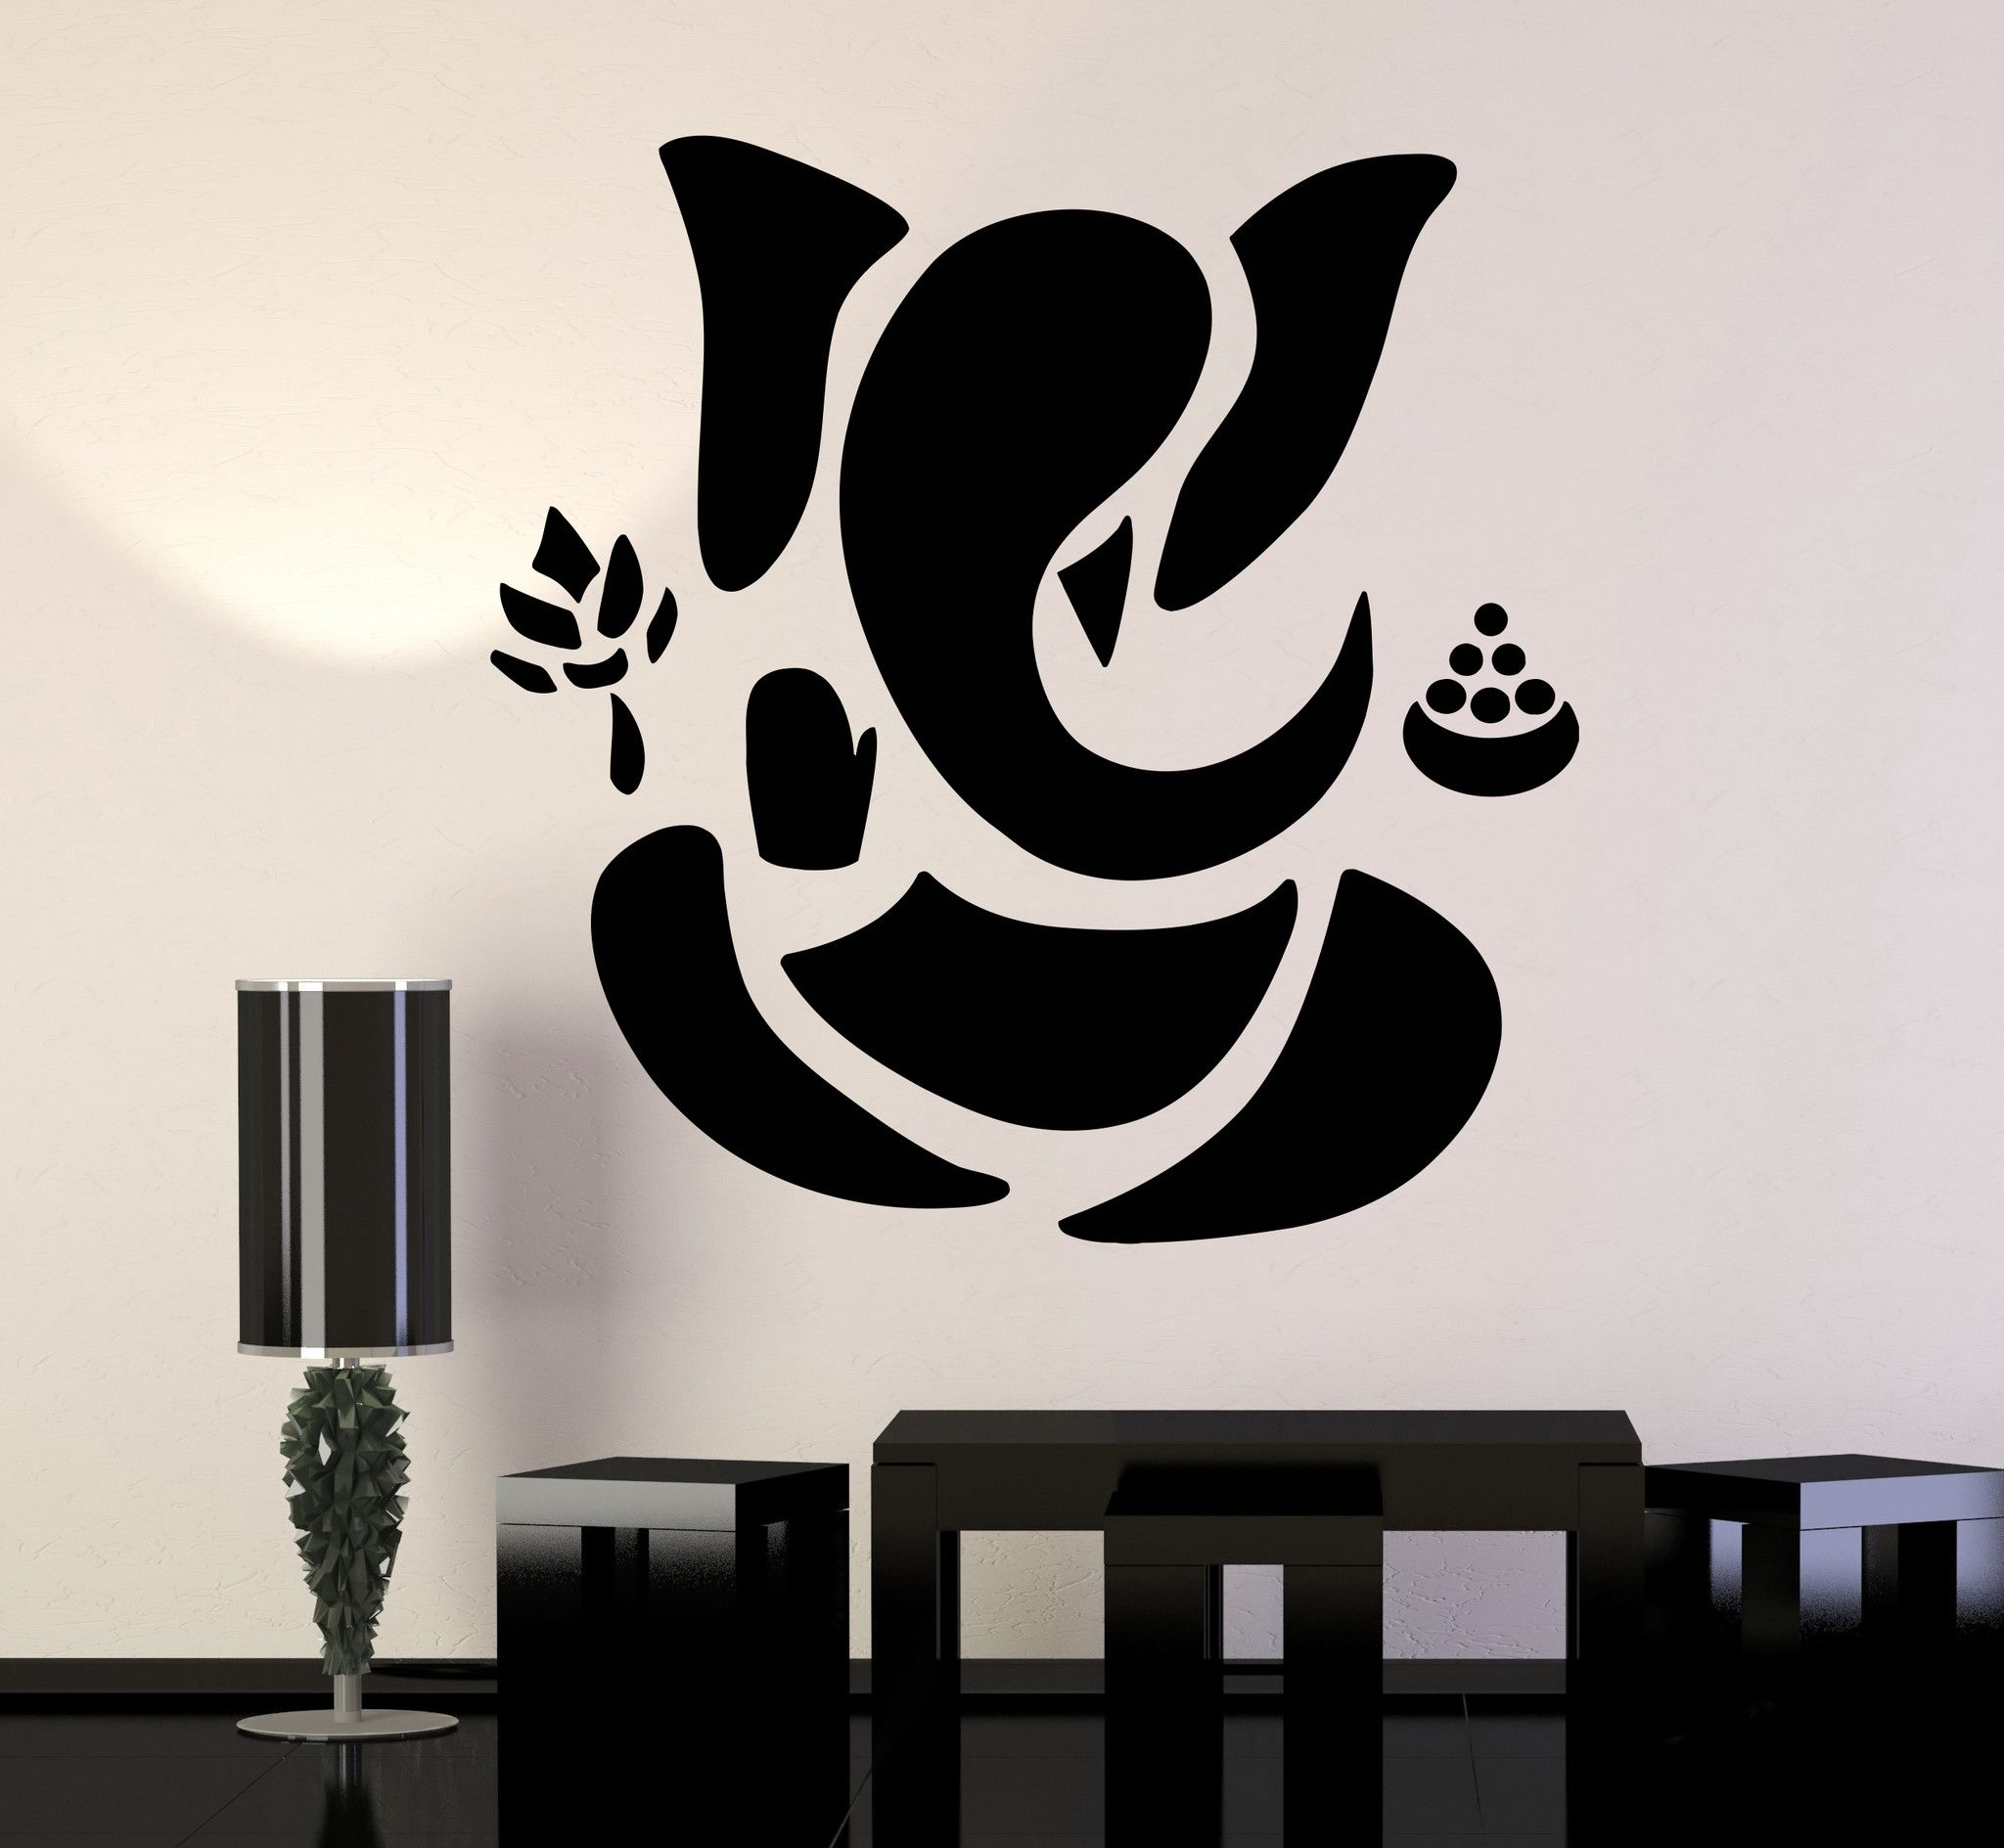 Vinyl Wall Decal Abstract Ganesha Hindu Hinduism Vedas God - Wall stickers decalswall decal wikipedia